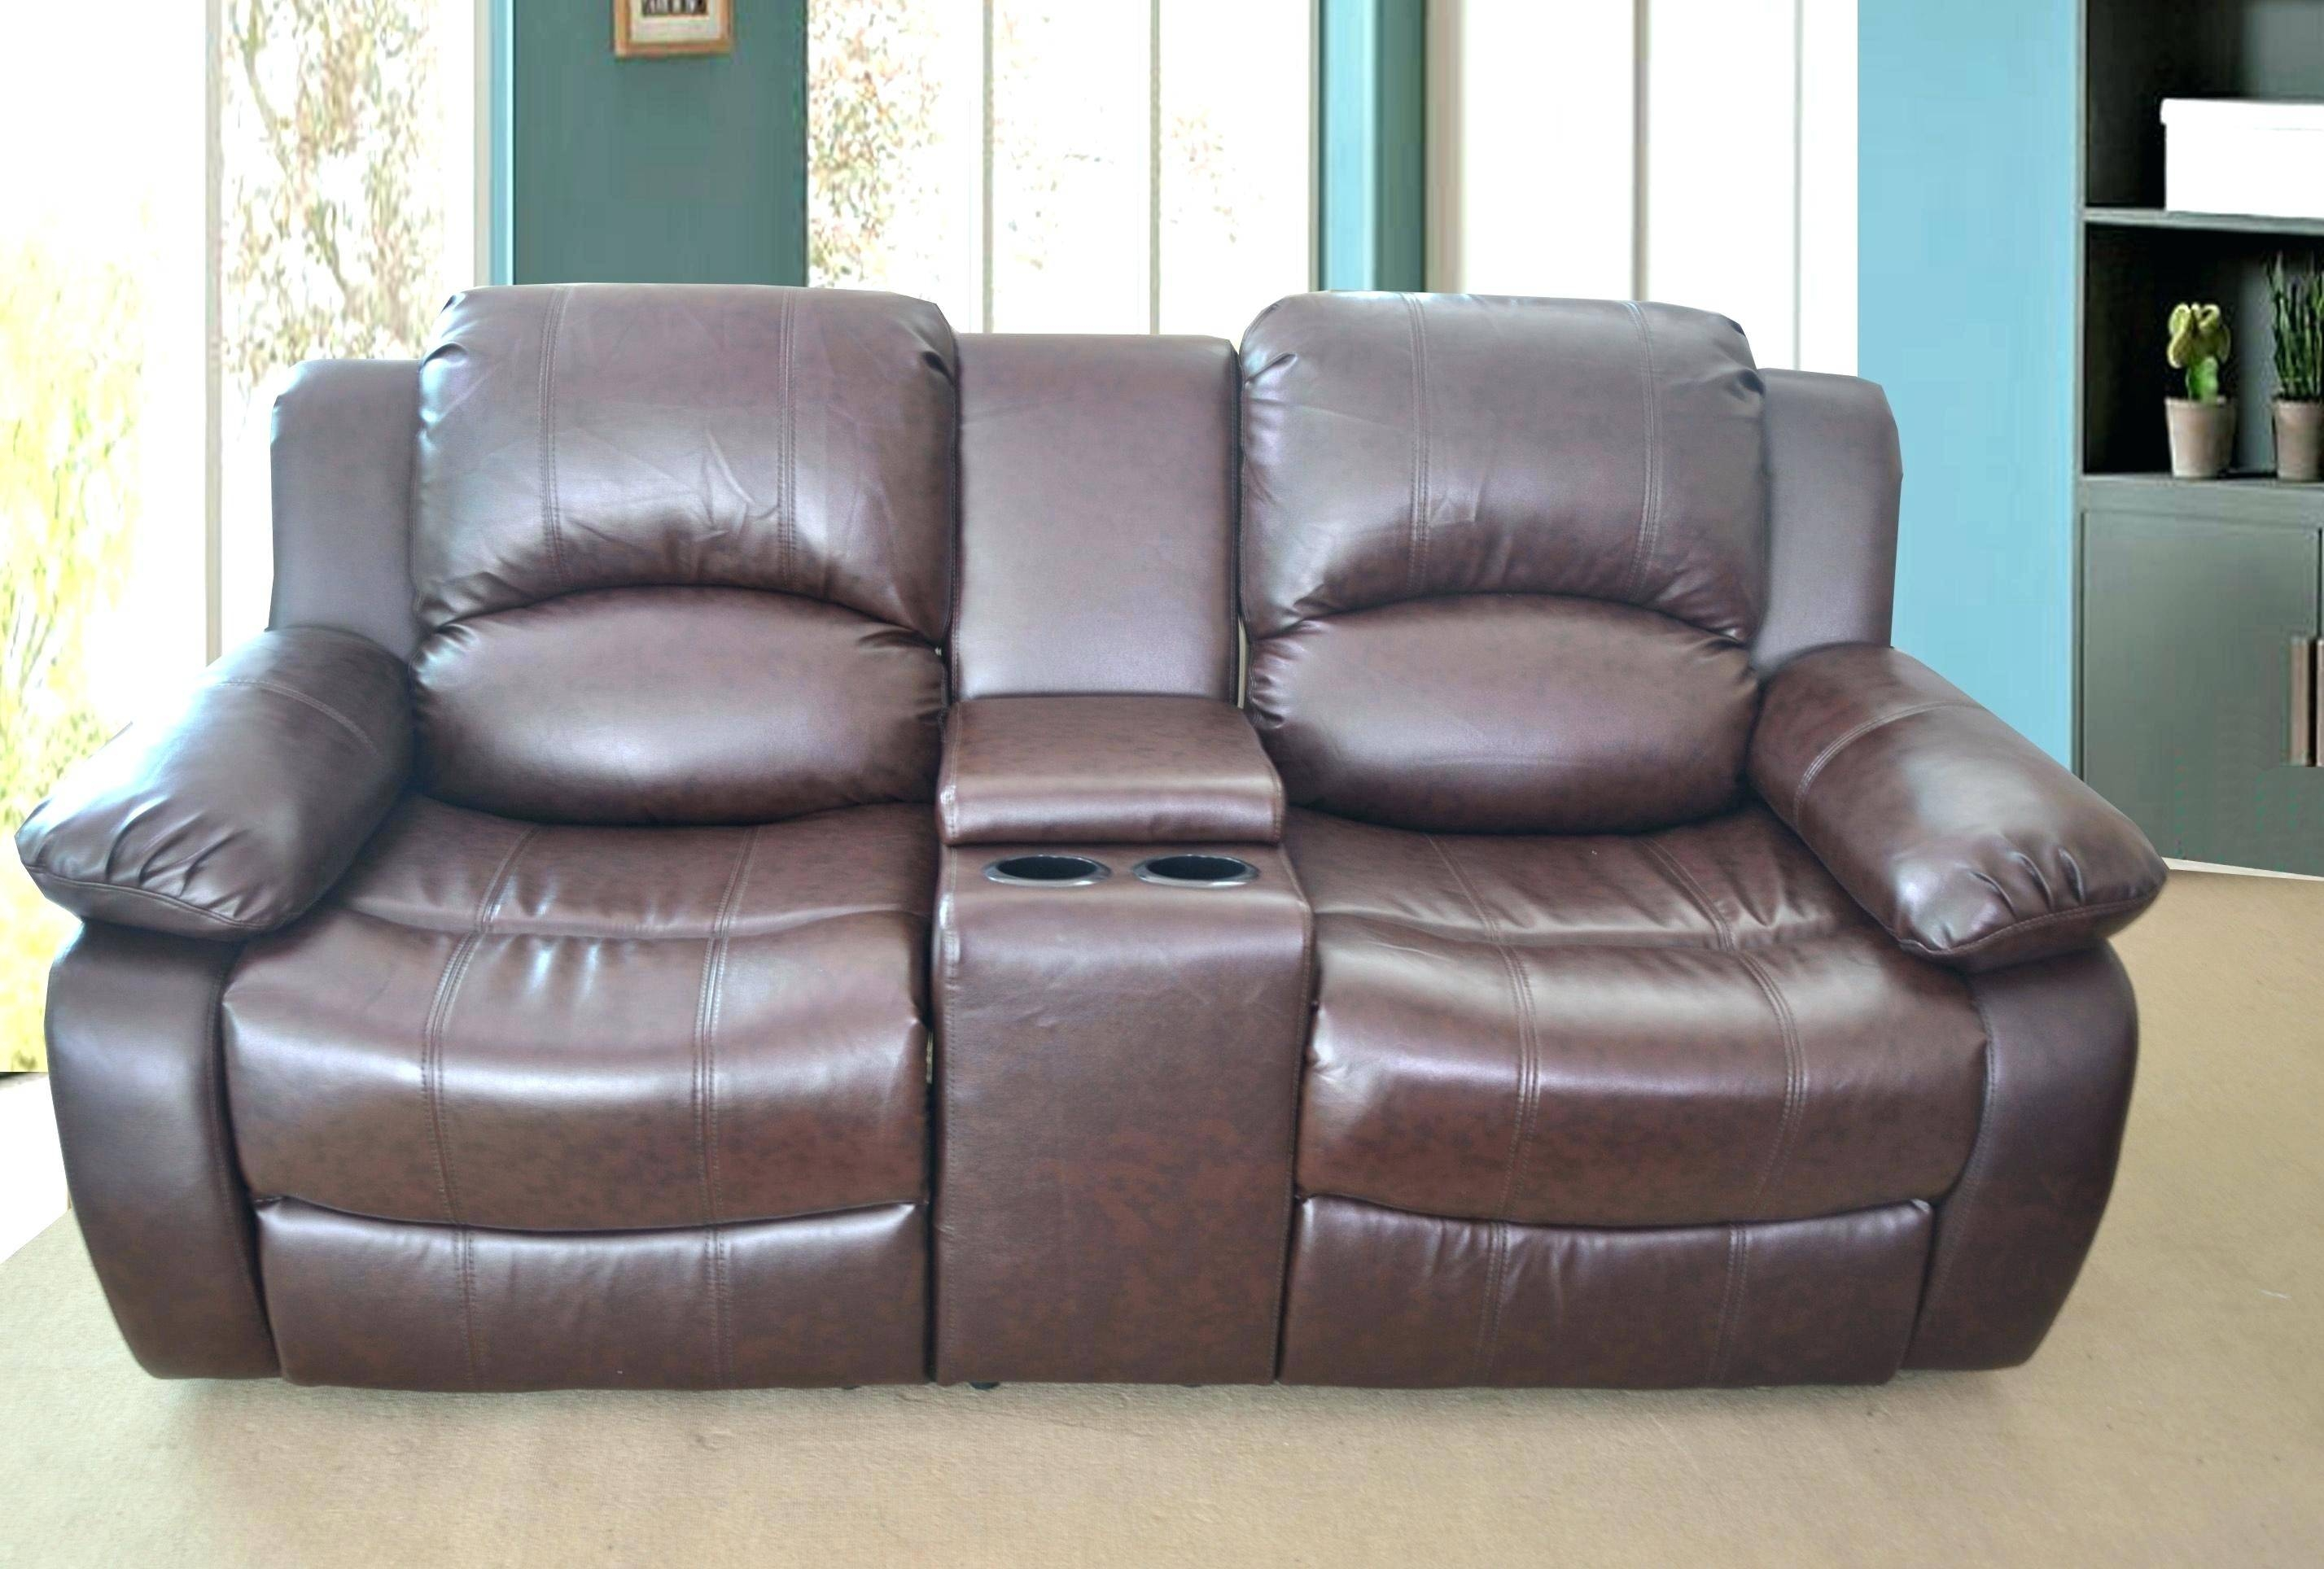 Berkline Leather Recliner Riverside Charcoal Recliner Recliner Rocker Costco Home Theater